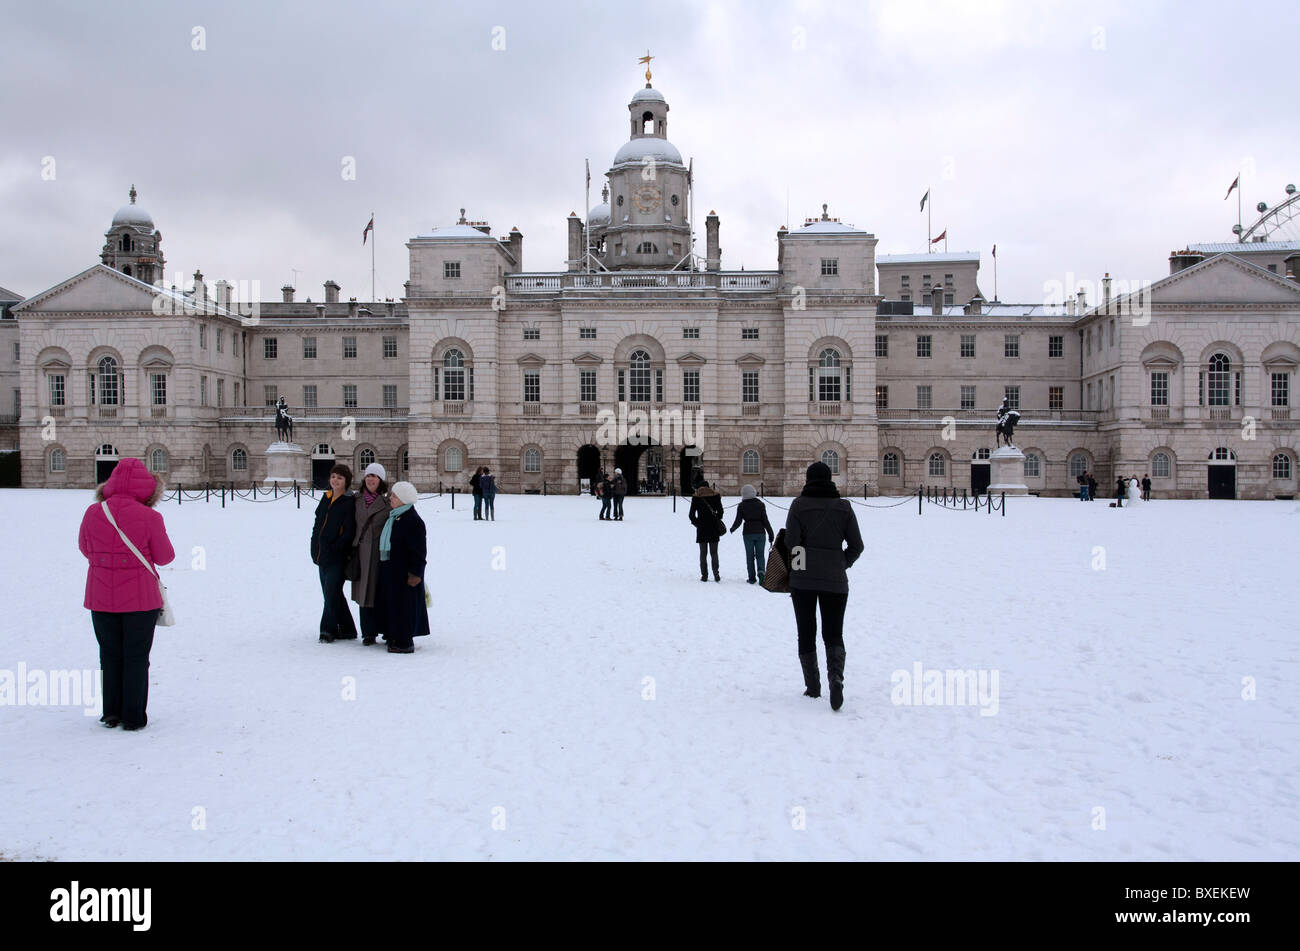 Horse Guards Parade - London Stockbild